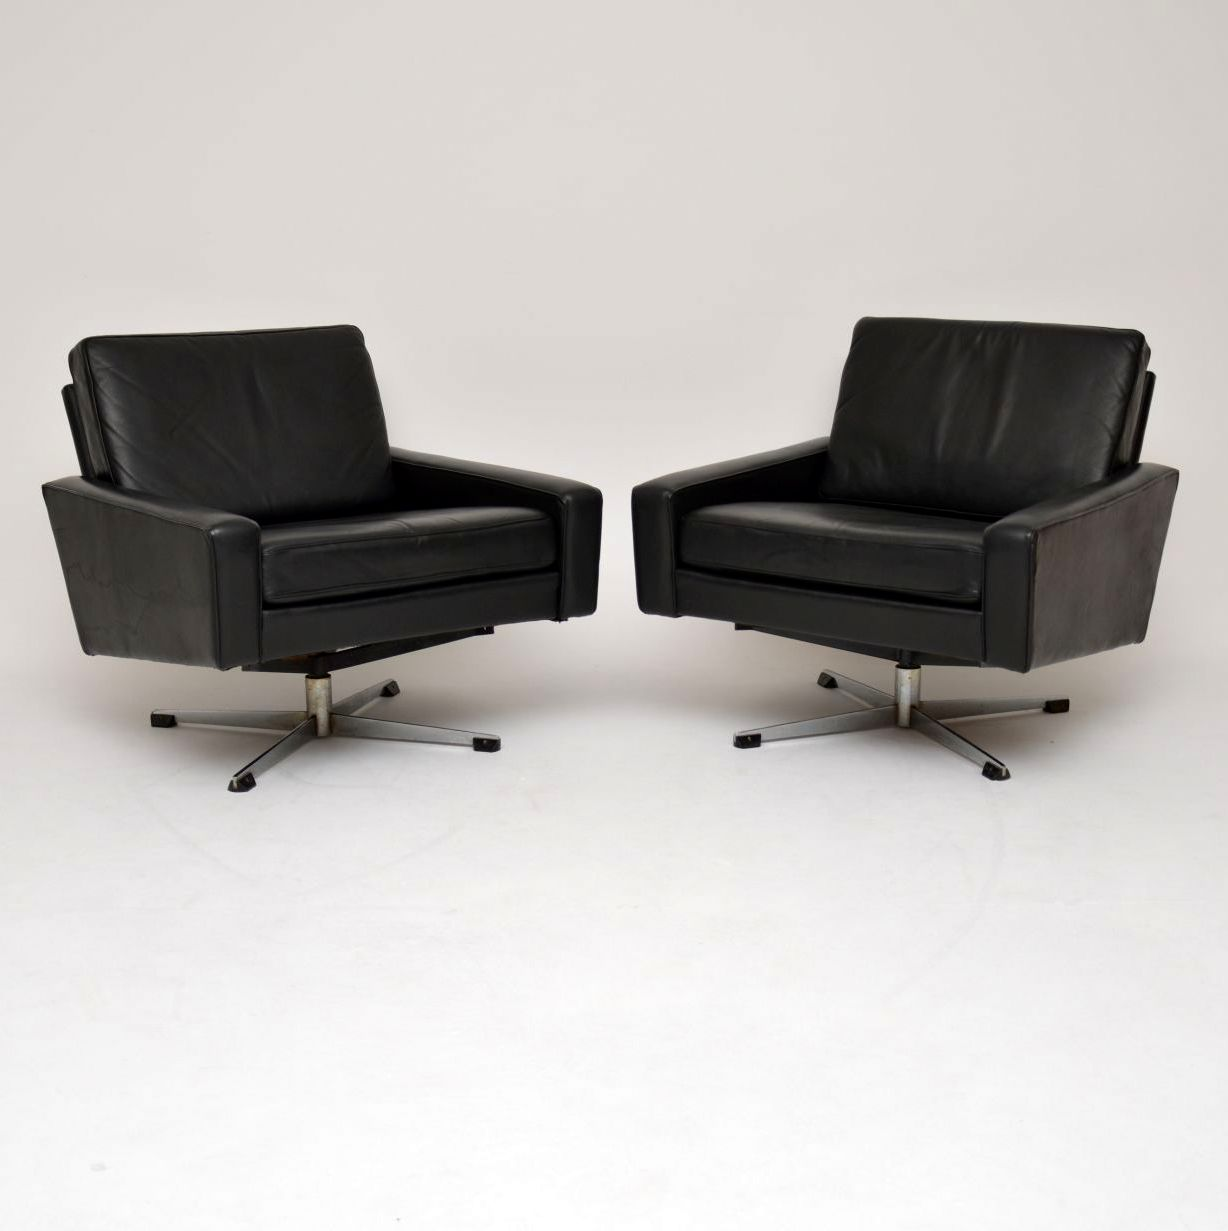 pair of danish retro vintage leather armchairs